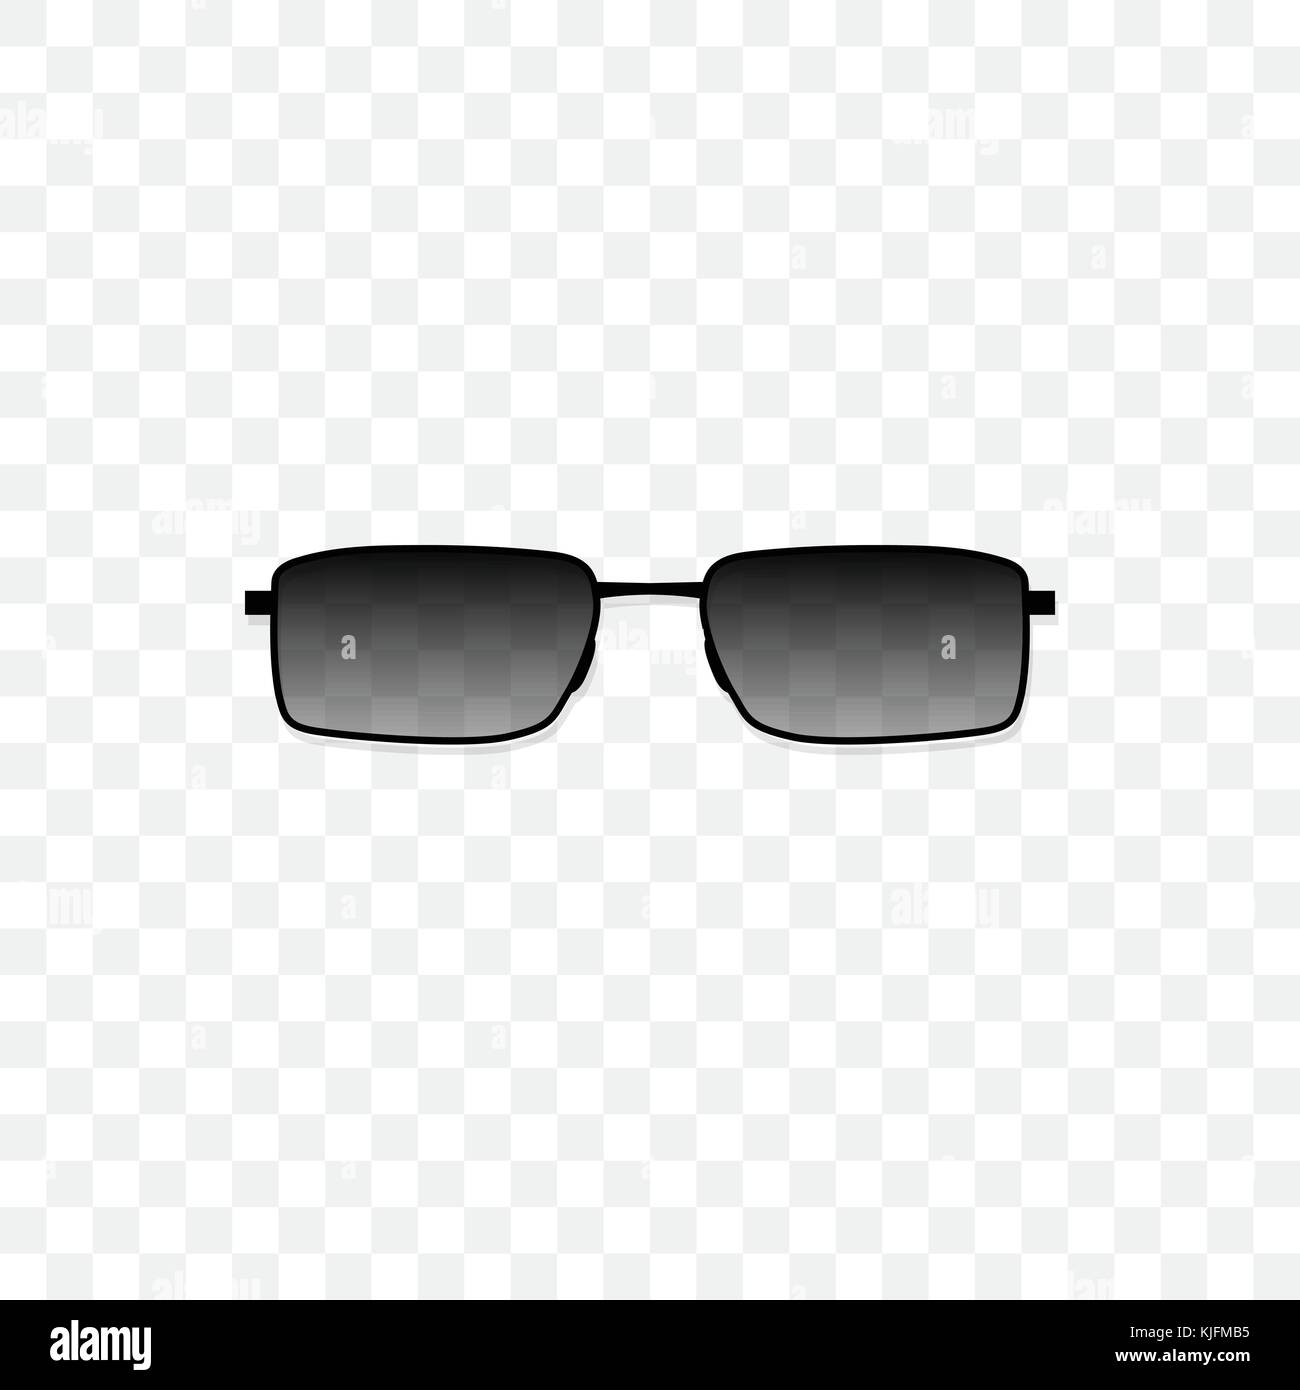 Realistic sunglasses with a translucent black glass on a transparent background. Protection from sun and ultraviolet - Stock Image